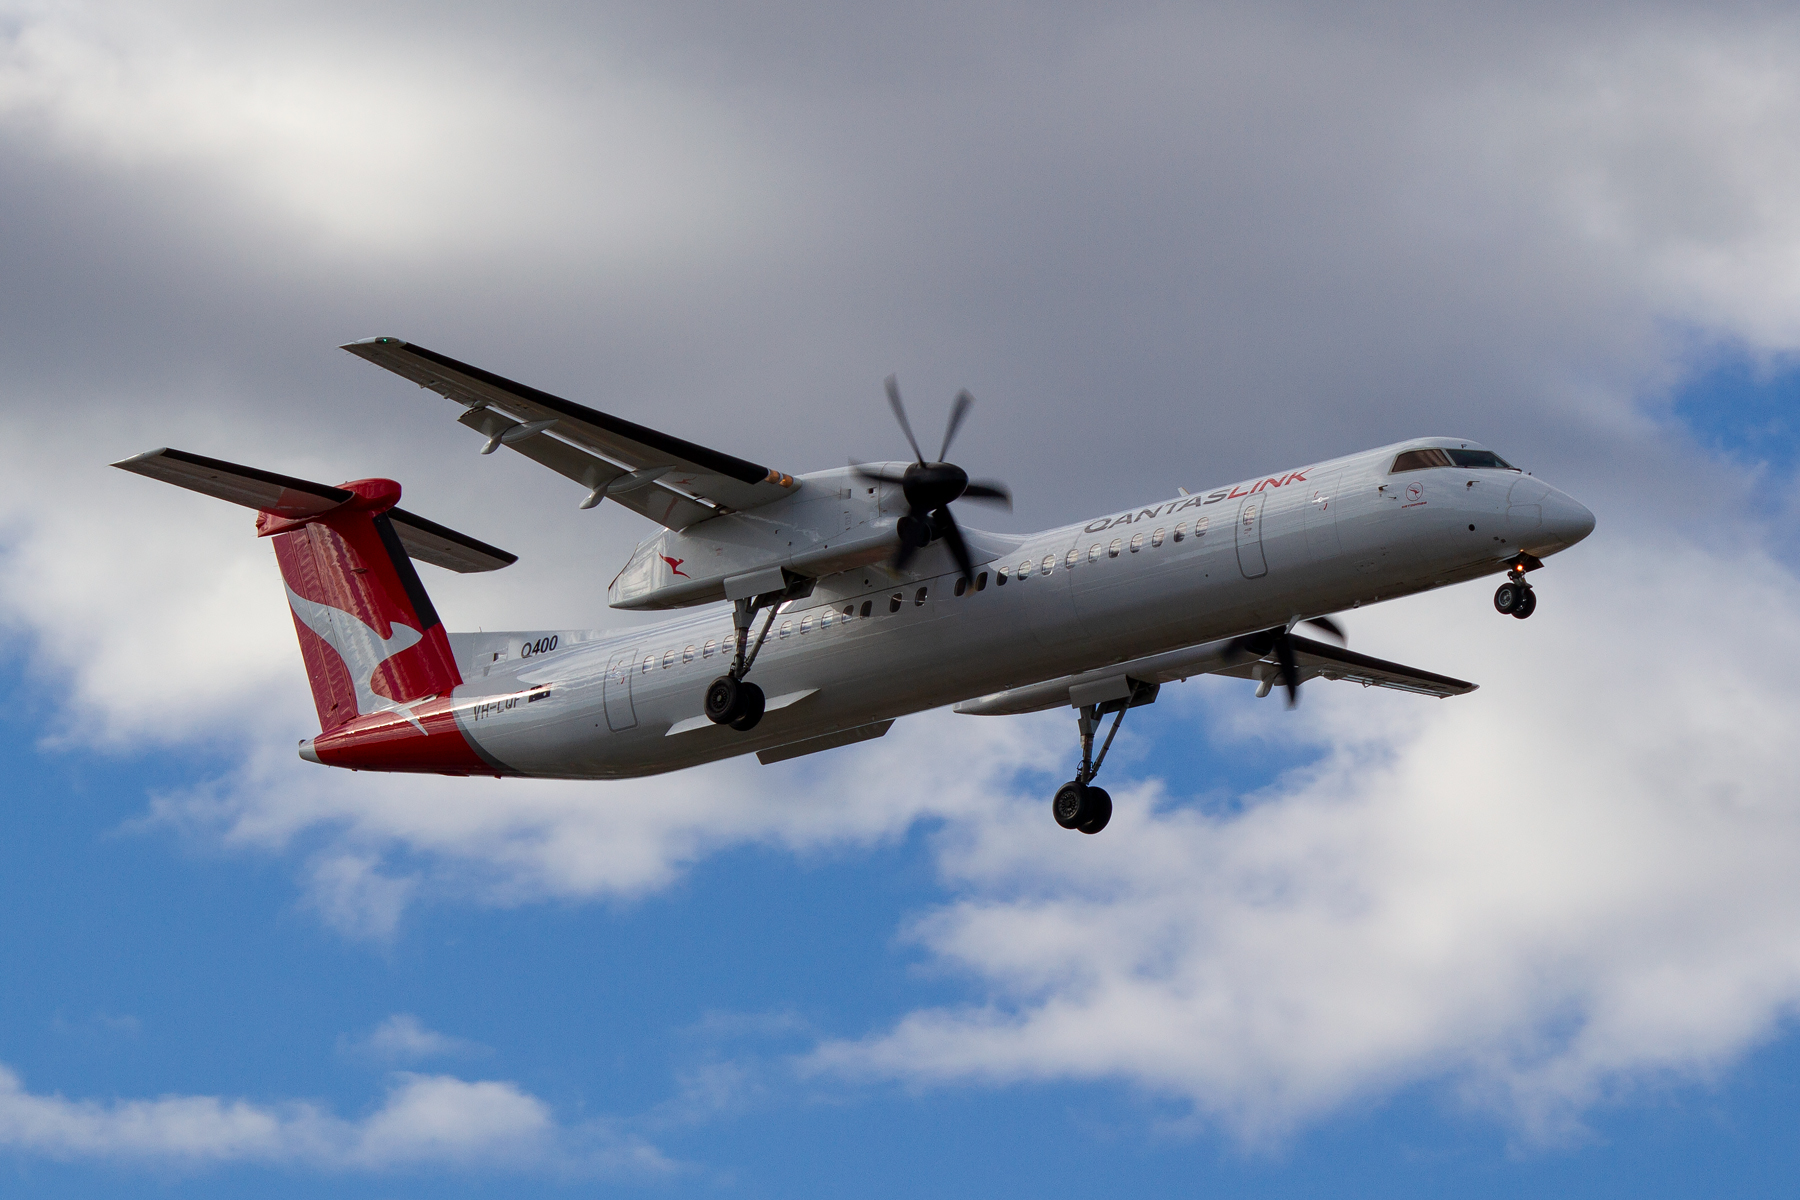 QantasLINK deHavilland Canada DHC8-Q400NG VH-LQF at Kingsford Smith